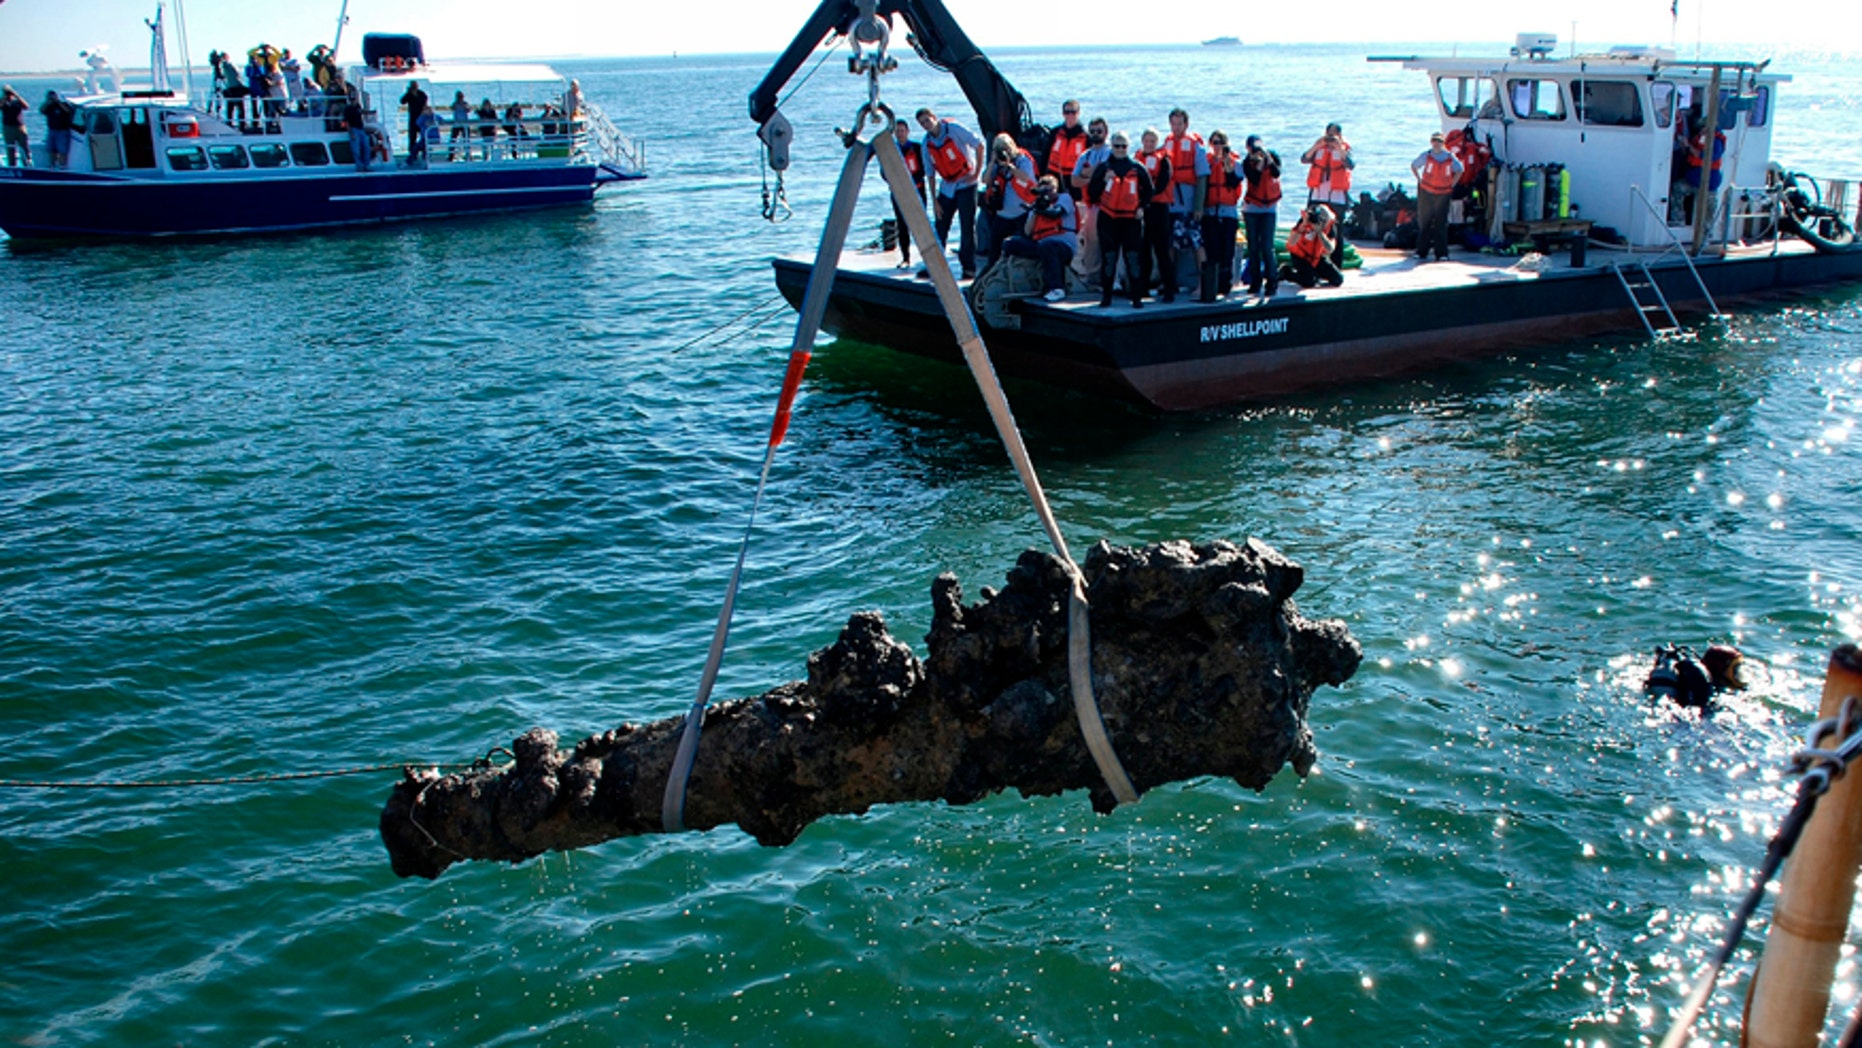 File photo - A one-ton cannon which was recovered from the Queen Anne's Revenge shipwreck site, is pulled from the water near Beaufort, North Carolina, Oct. 26, 2011.